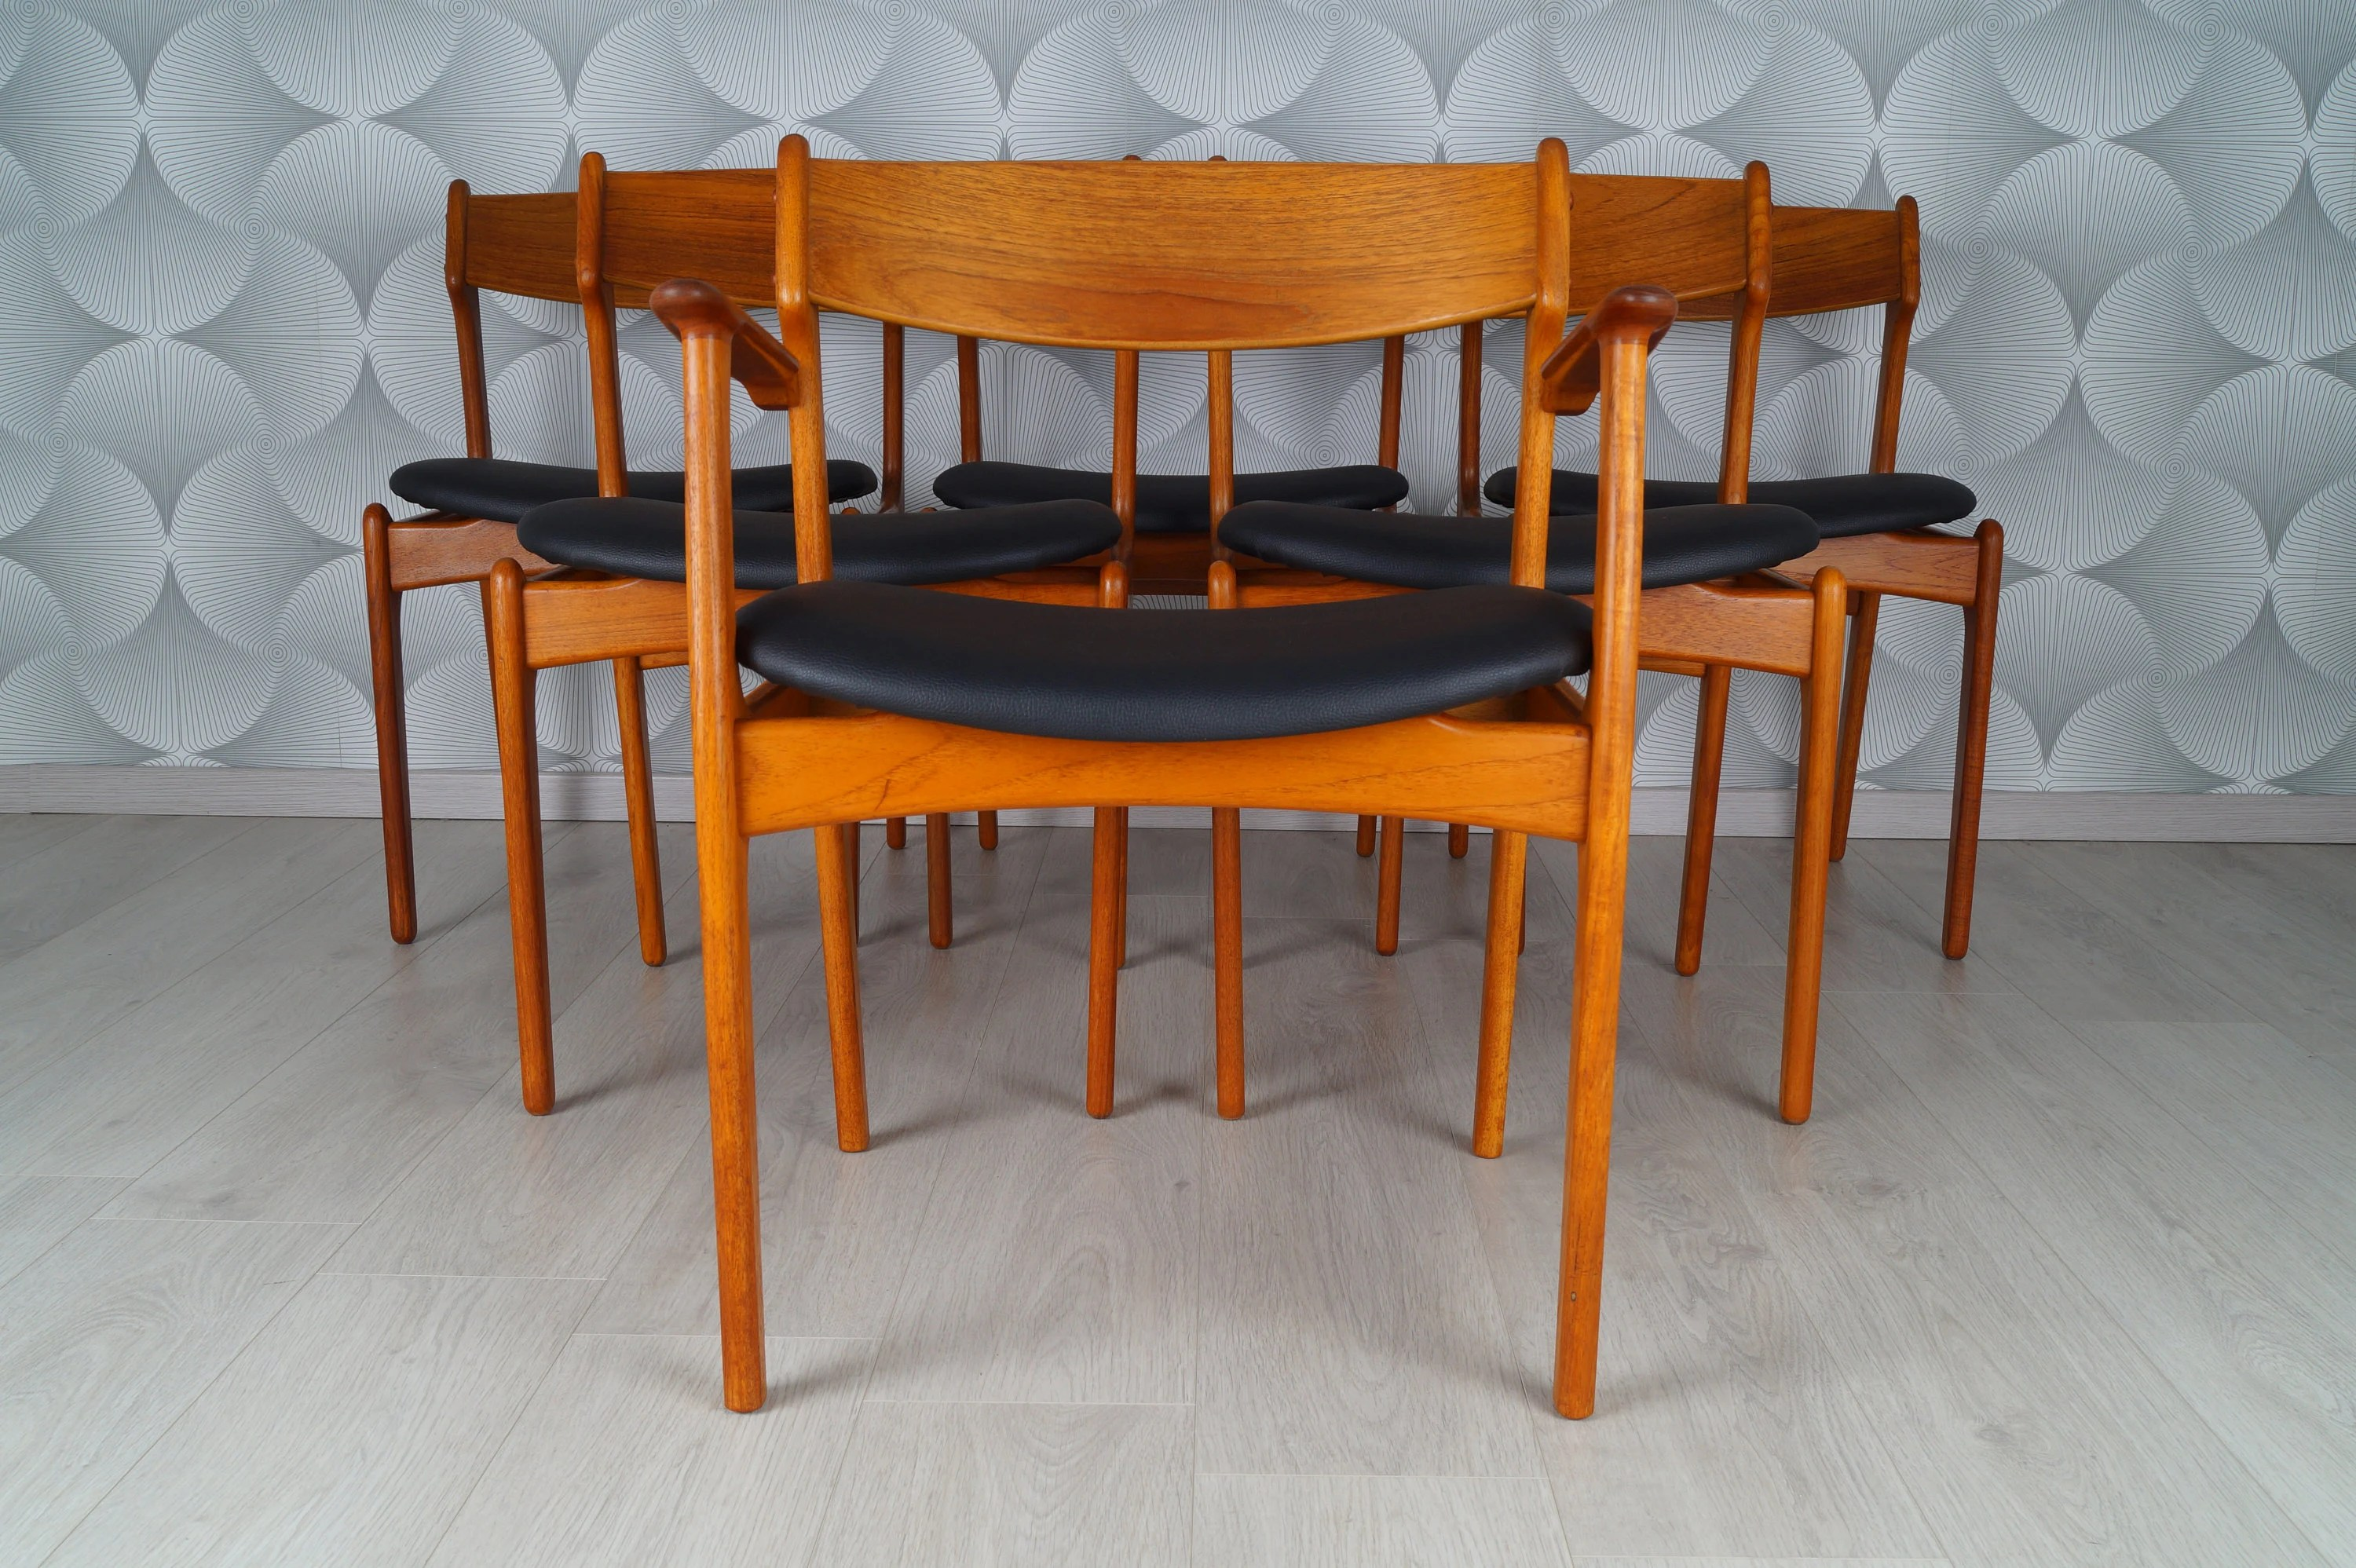 Teak Dining Room Chairs Set Of 6 Danish Teak Dining Room Chairs 50s 60s O D Møbler